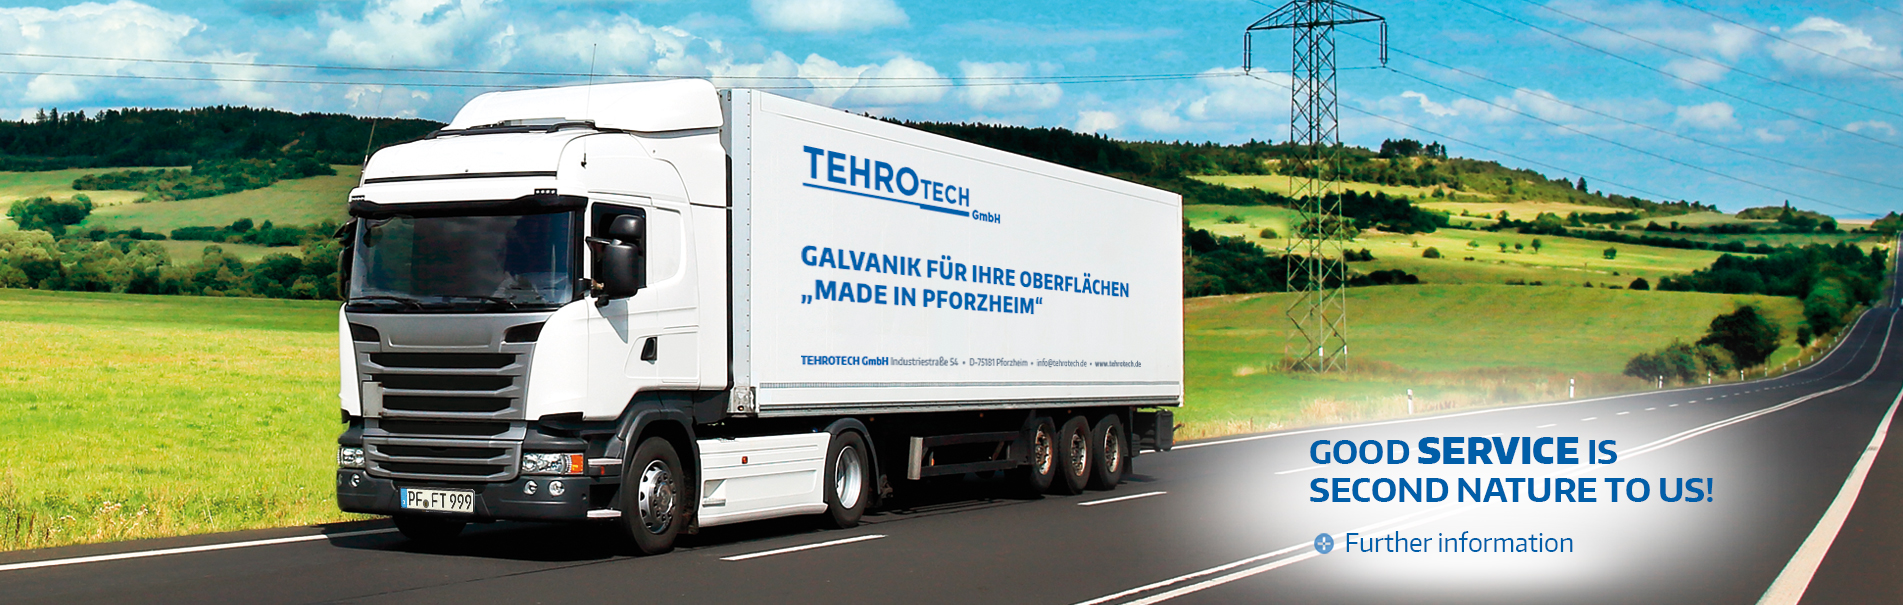 Tehrotech GmbH – Service and Consulting